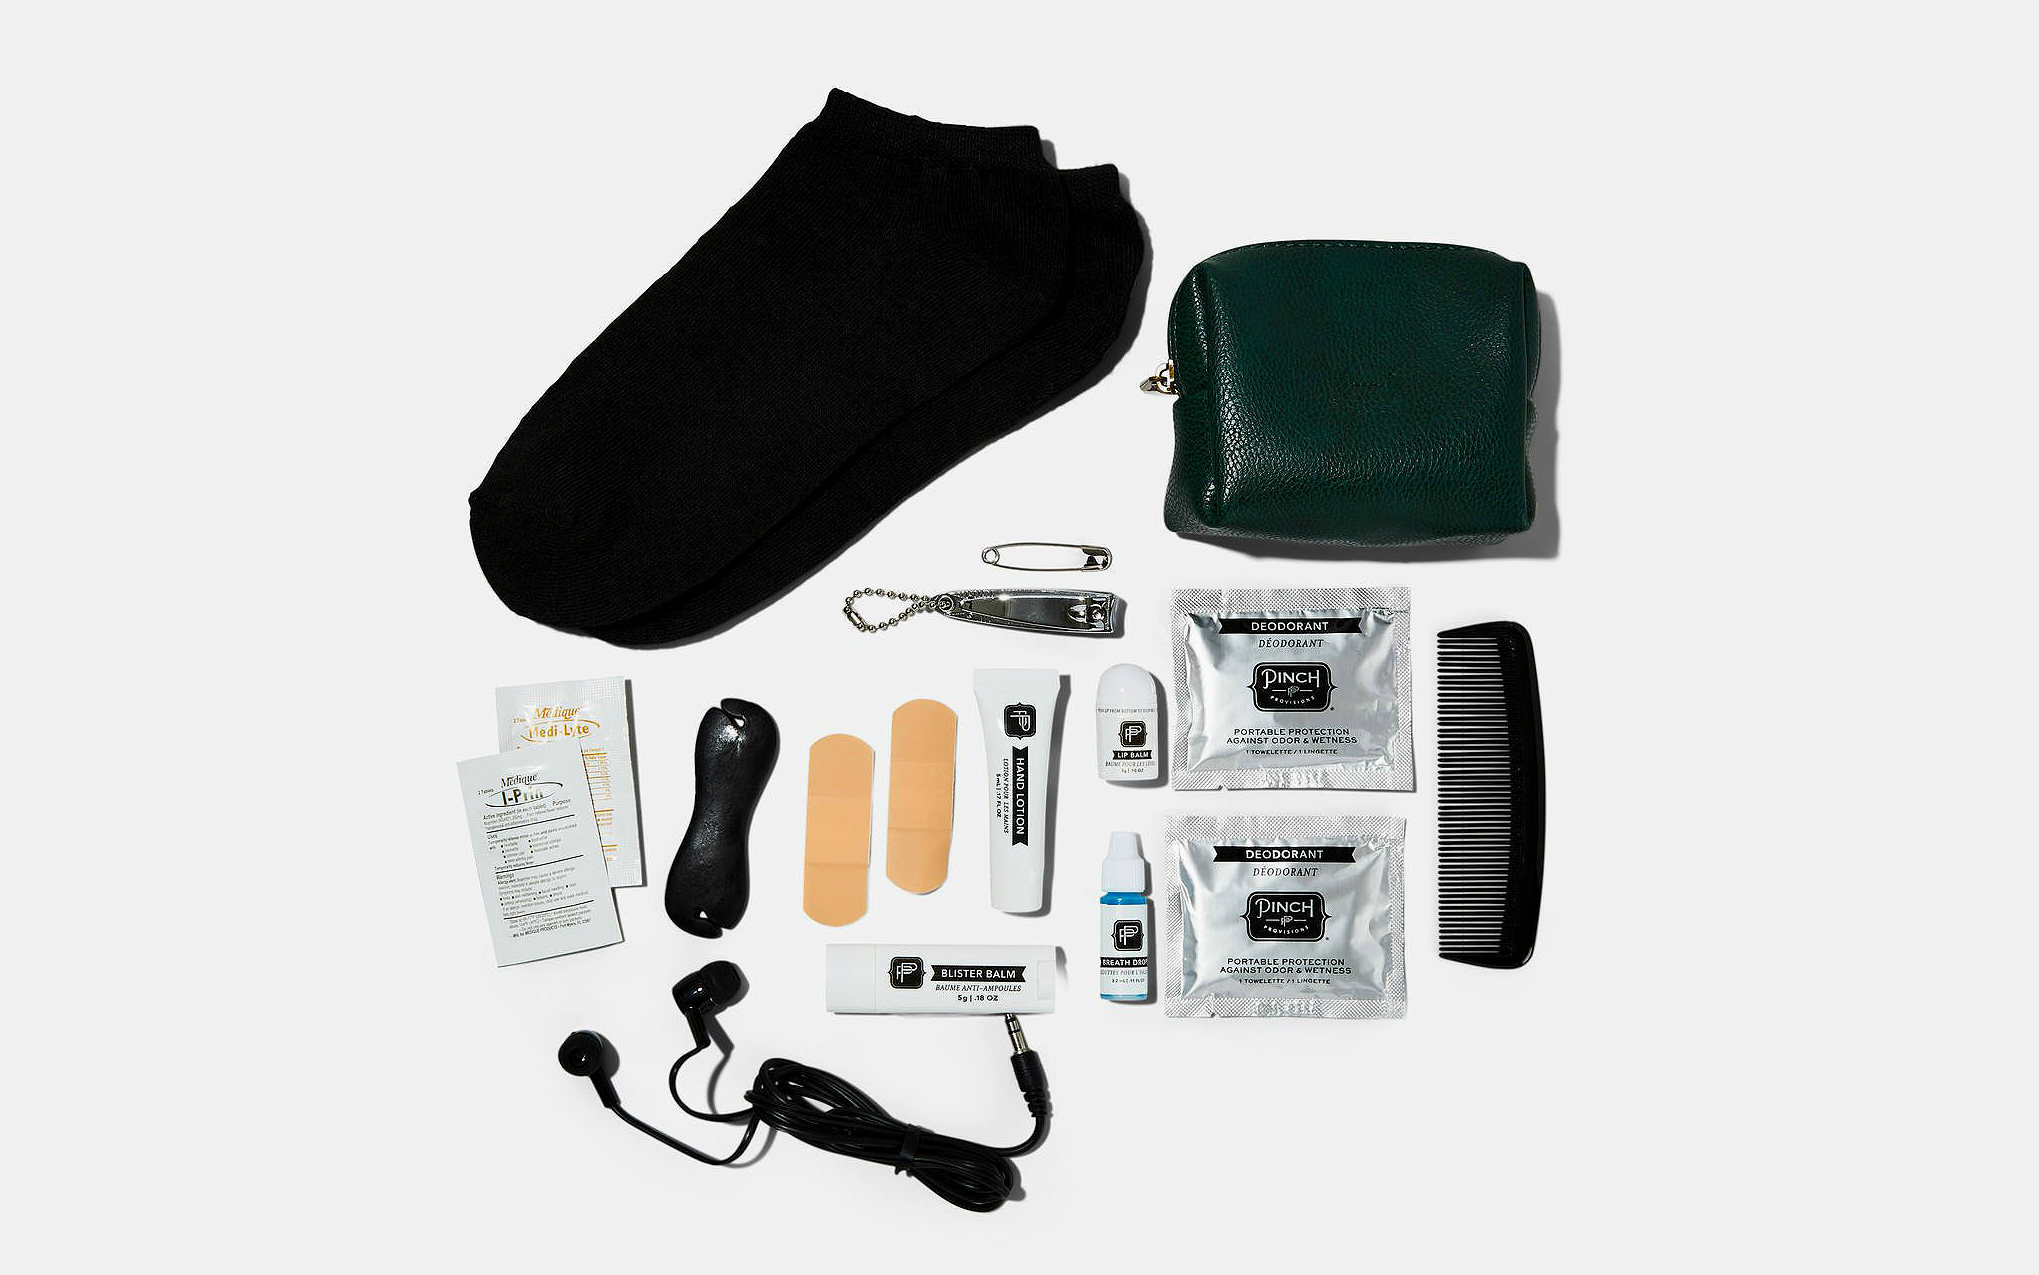 Pinch Provisions Gym Kit